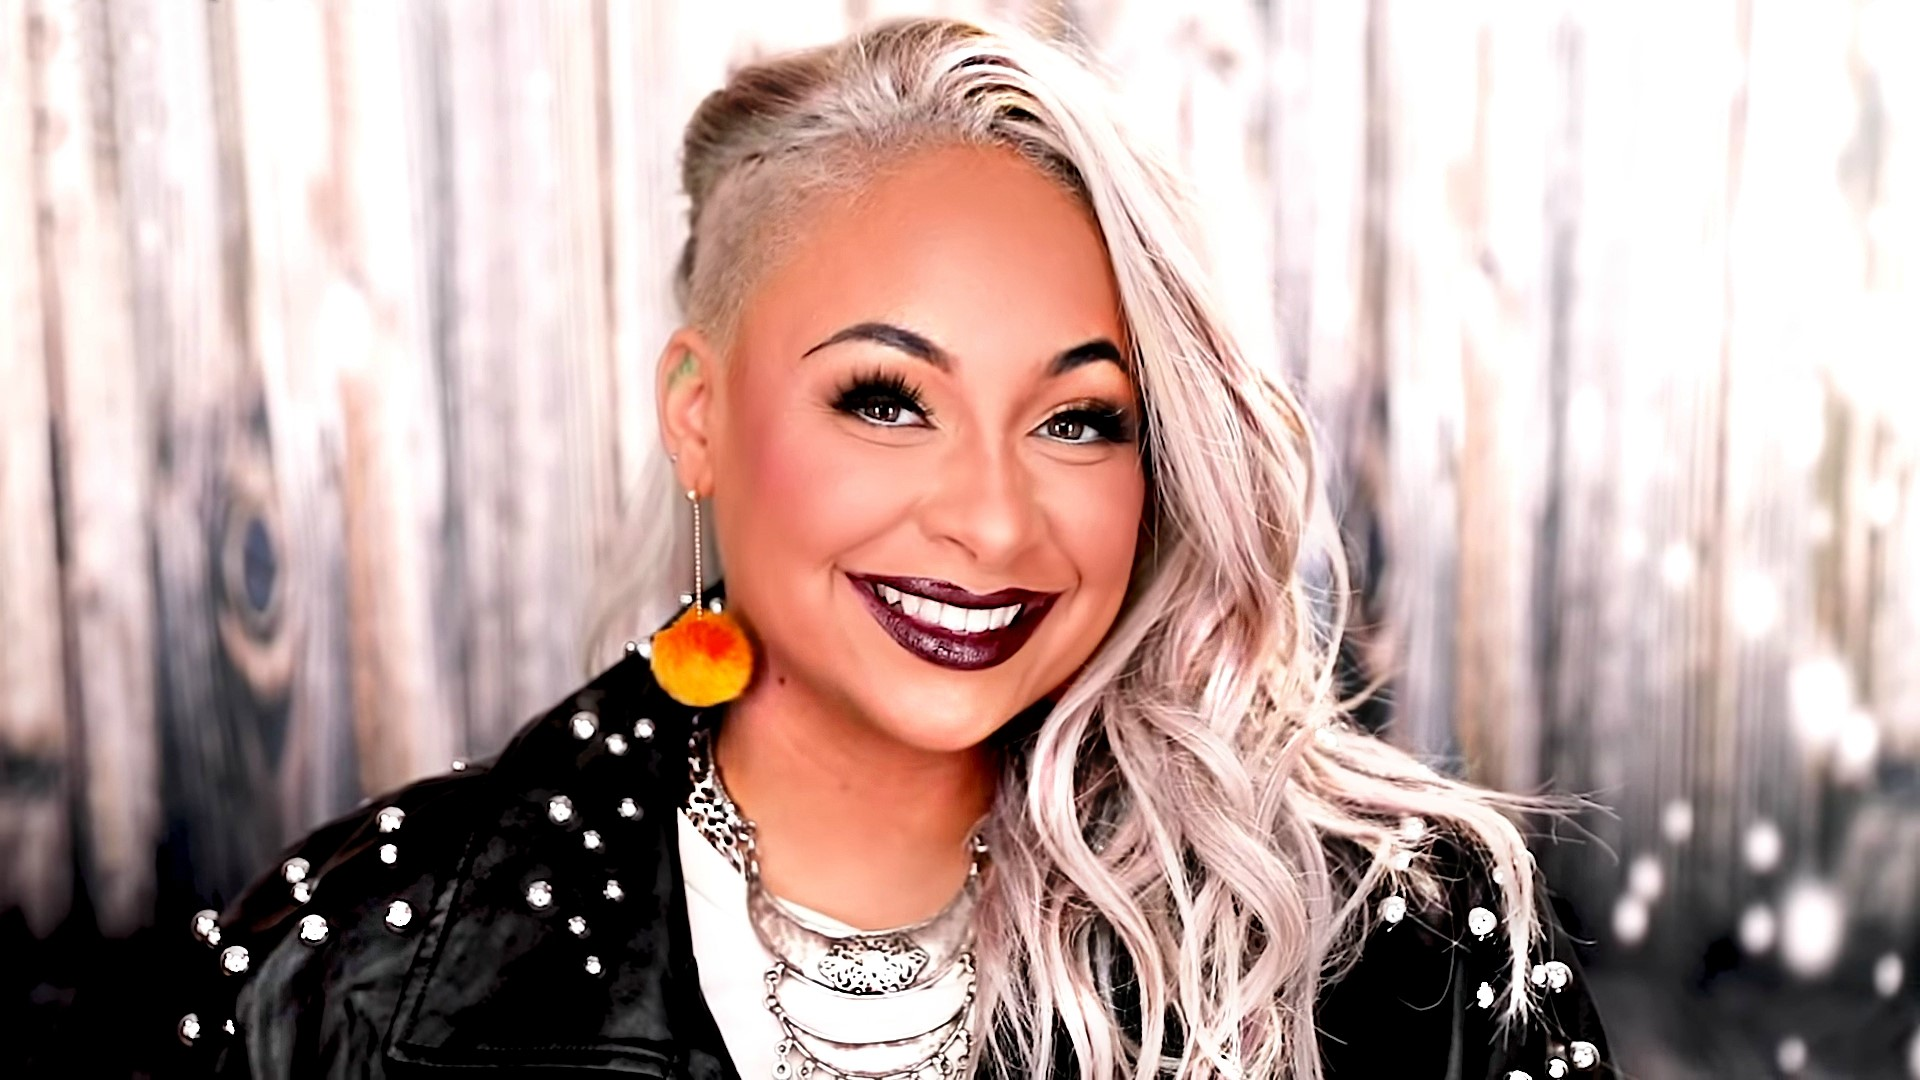 Raven Symone To Star In What Not To Wear Spinoff Pilot About Home Design For Hgtv Deadline